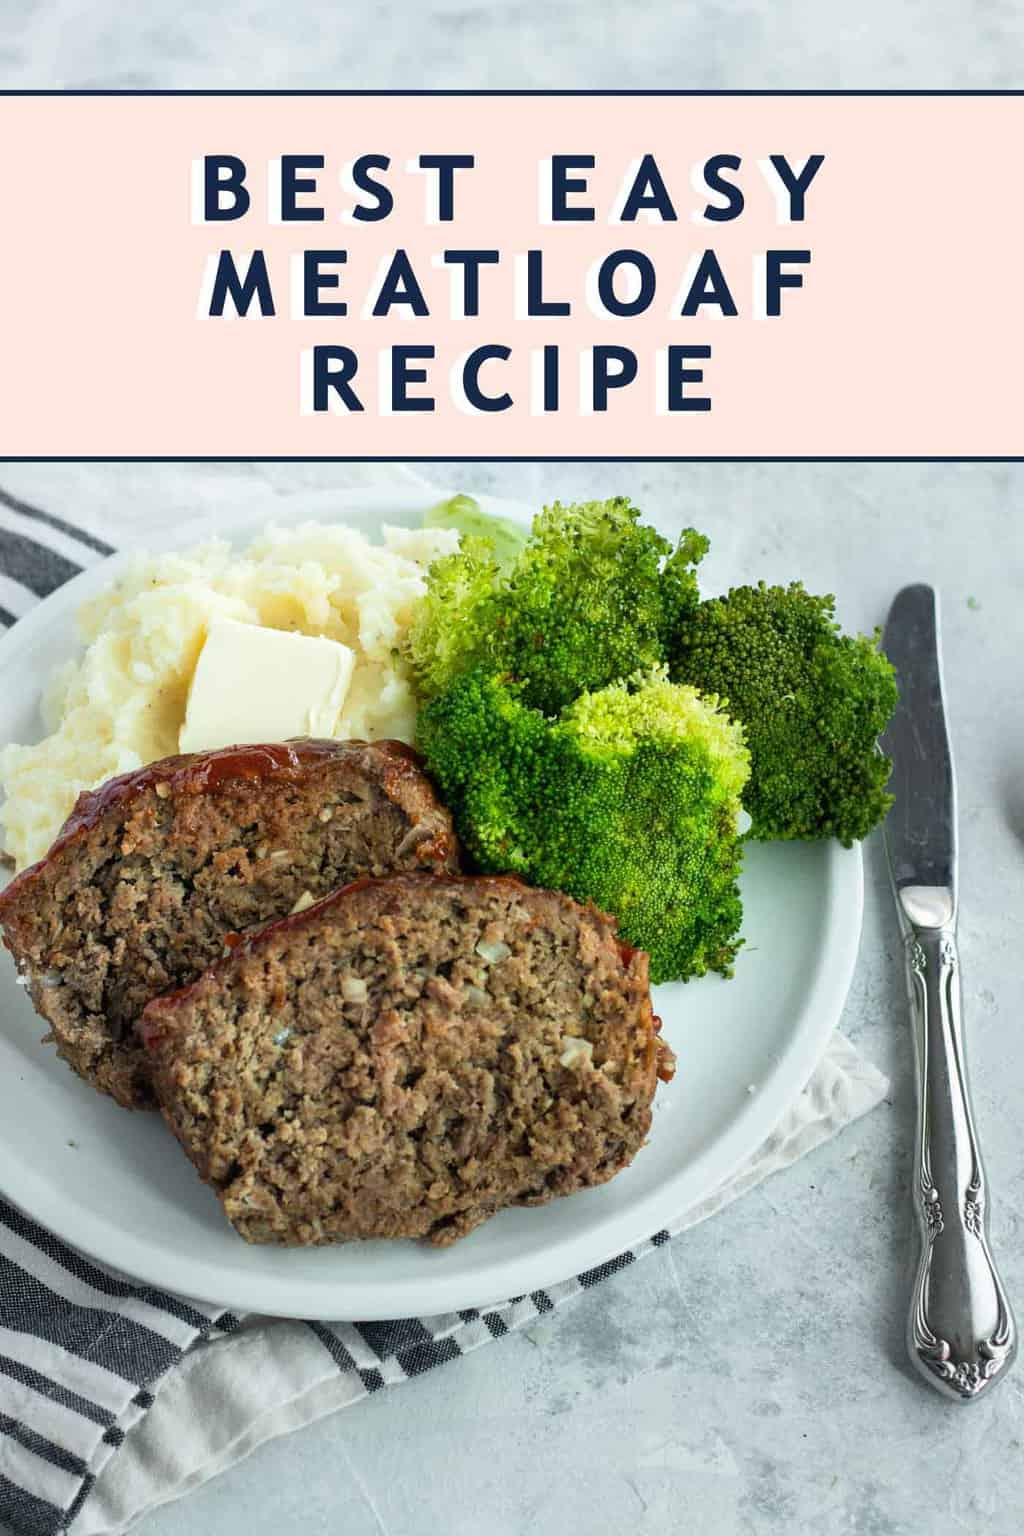 photo of the recipe card for Best Easy Meatloaf by top Houston lifestyle blogger Ashley Rose of Sugar & Cloth